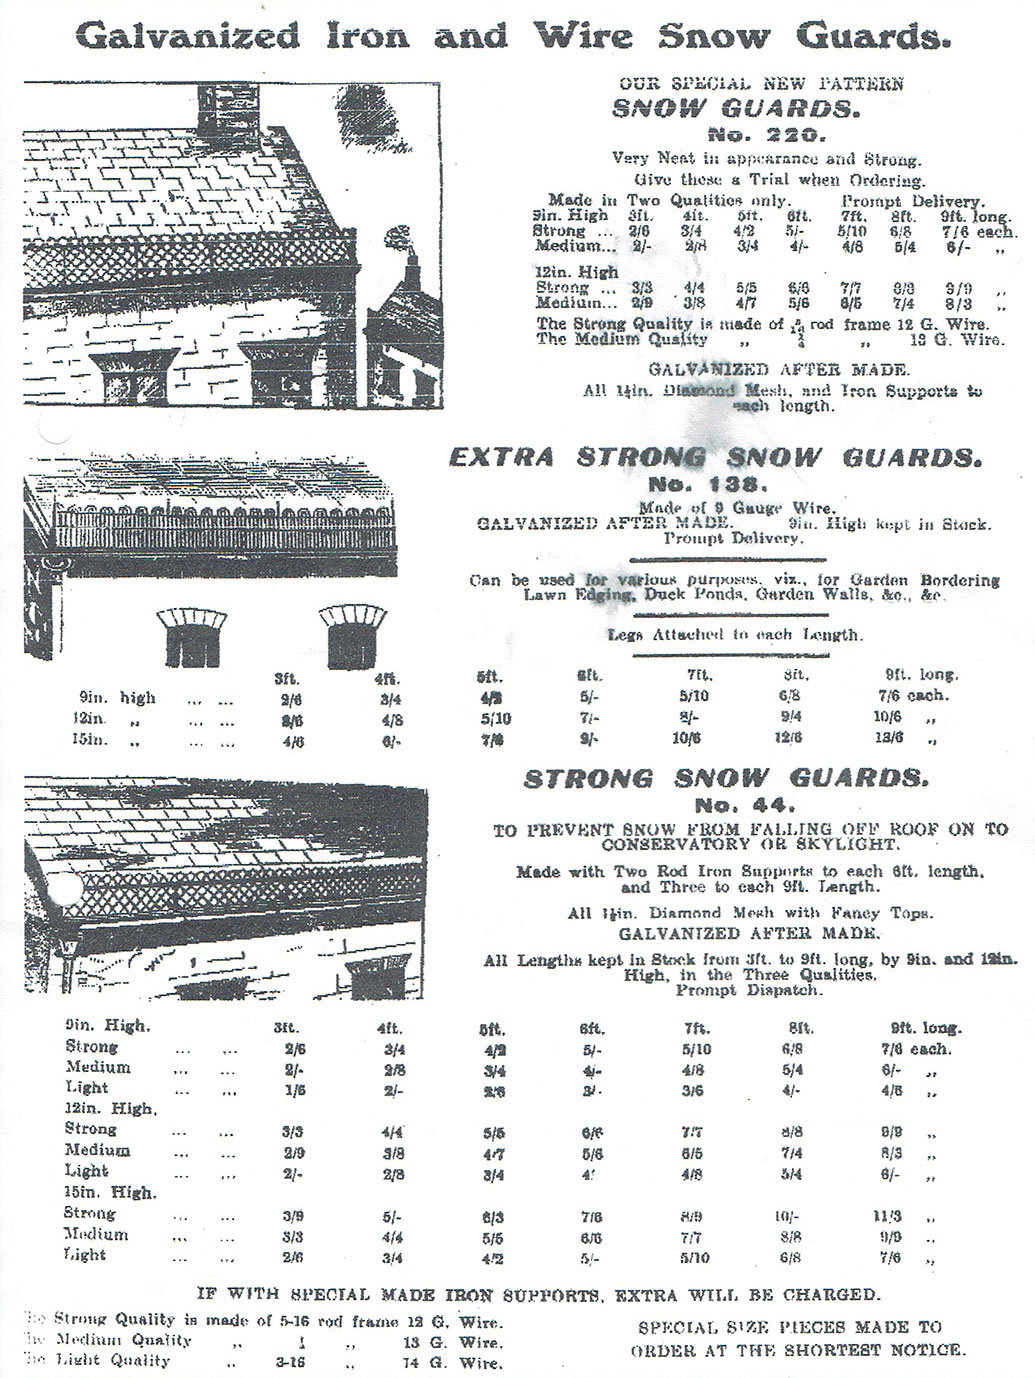 A.J. HARVEY & Co., Catalogue 1911